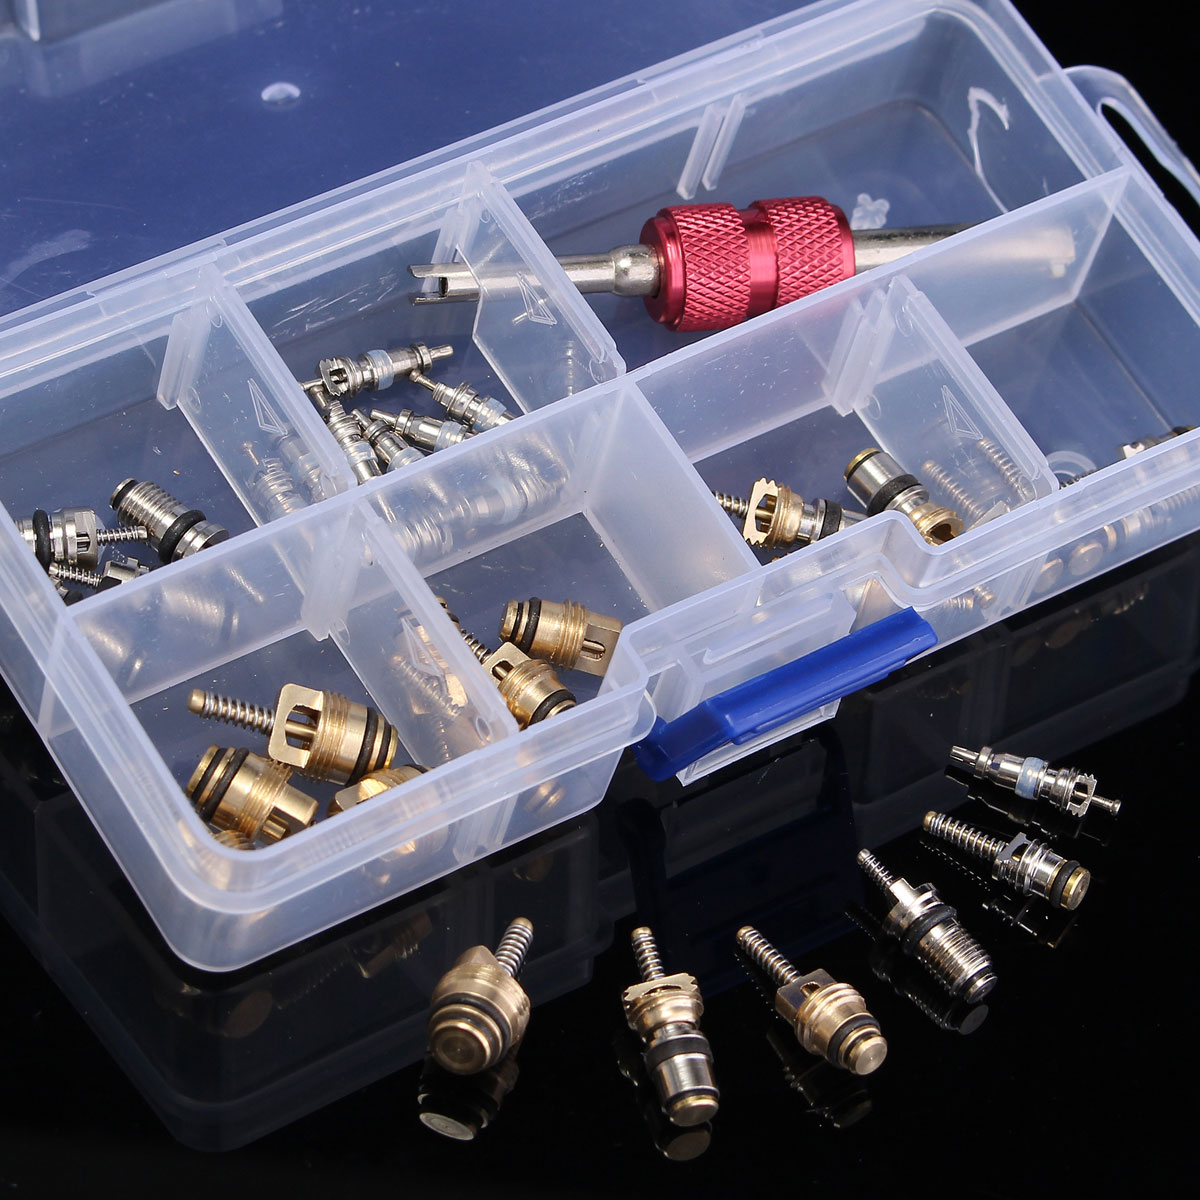 35pcs Universal A/C Car Air Conditioning Valve Core Repair Tool Kit Box for R12 & R134A